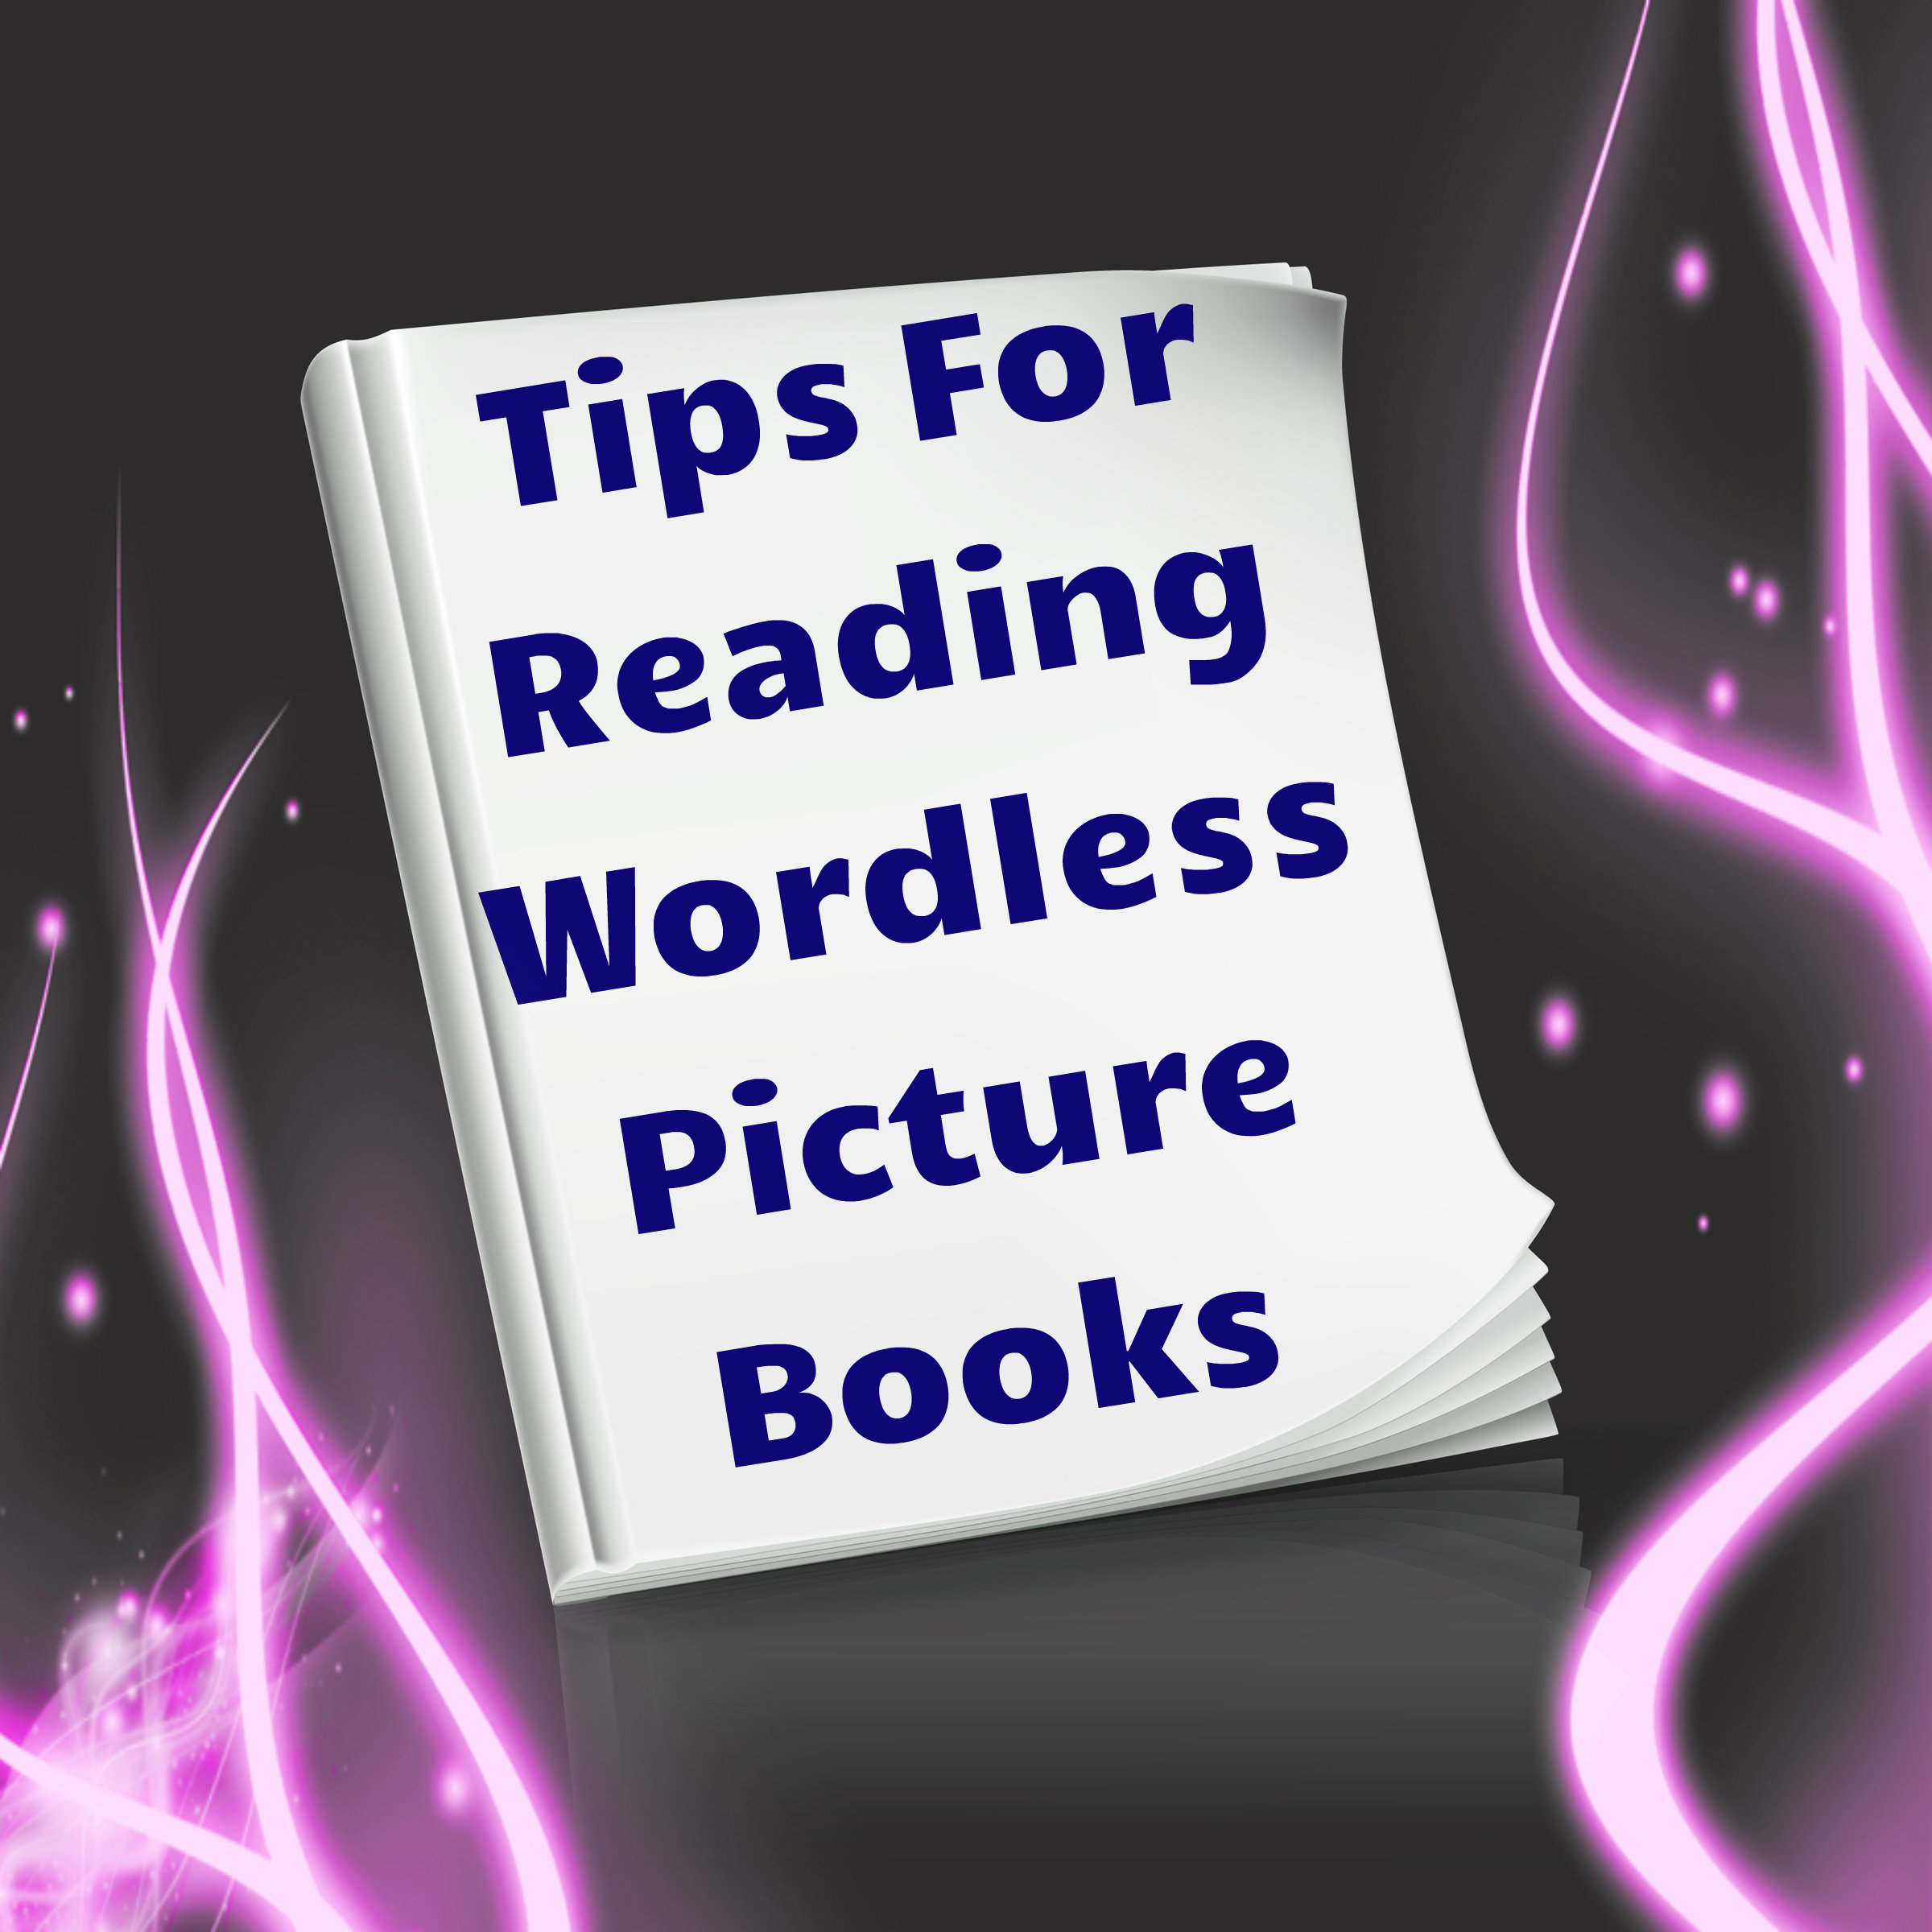 Tips for Reading Wordless Books